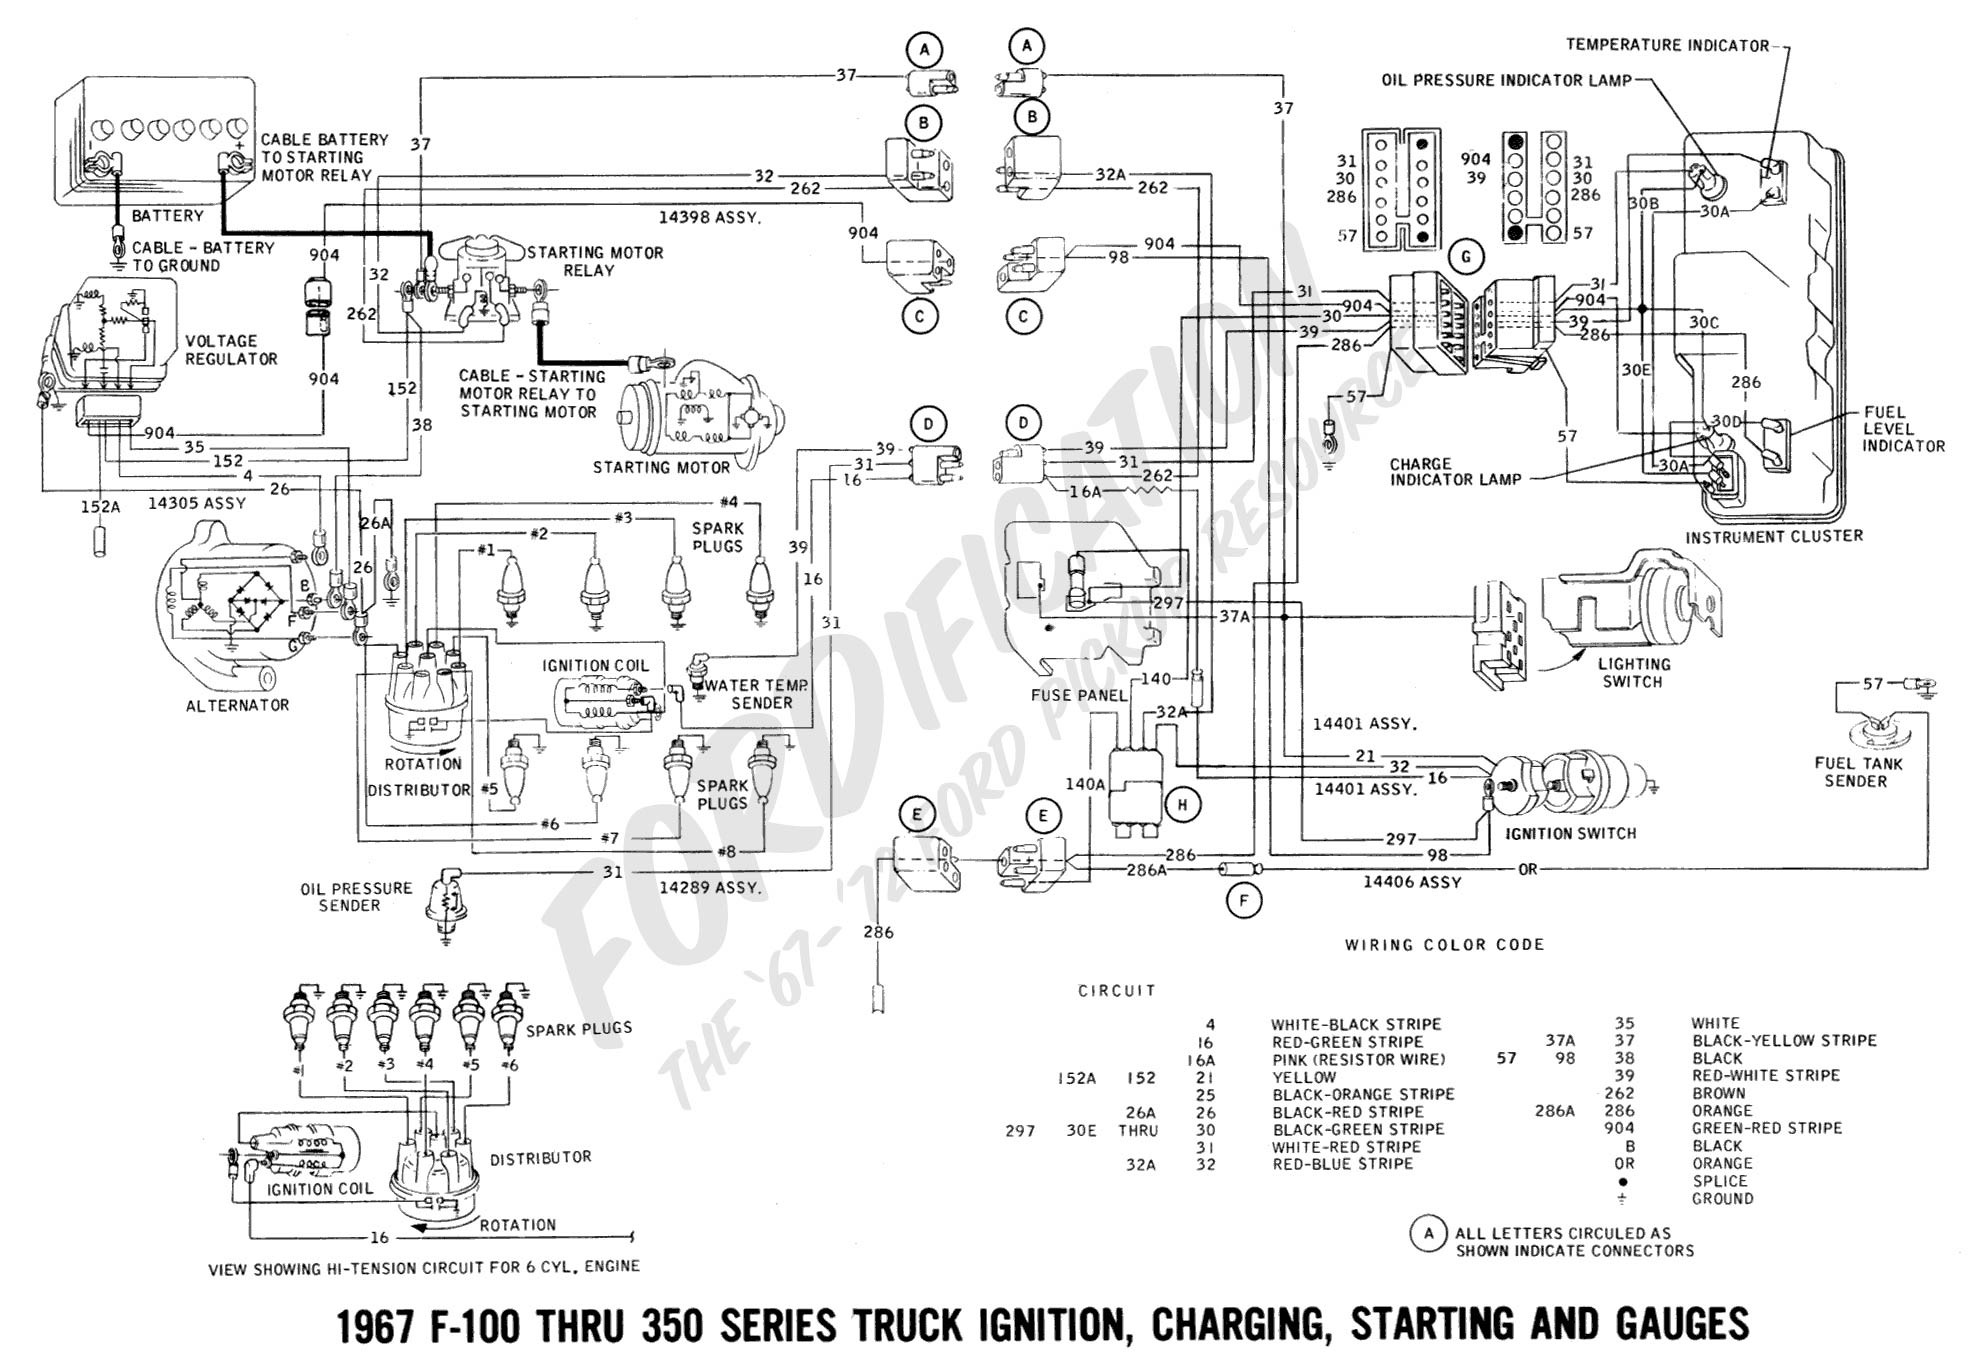 Truck Air kes Diagram 5 Pin Trailer Wiring Diagram ... on